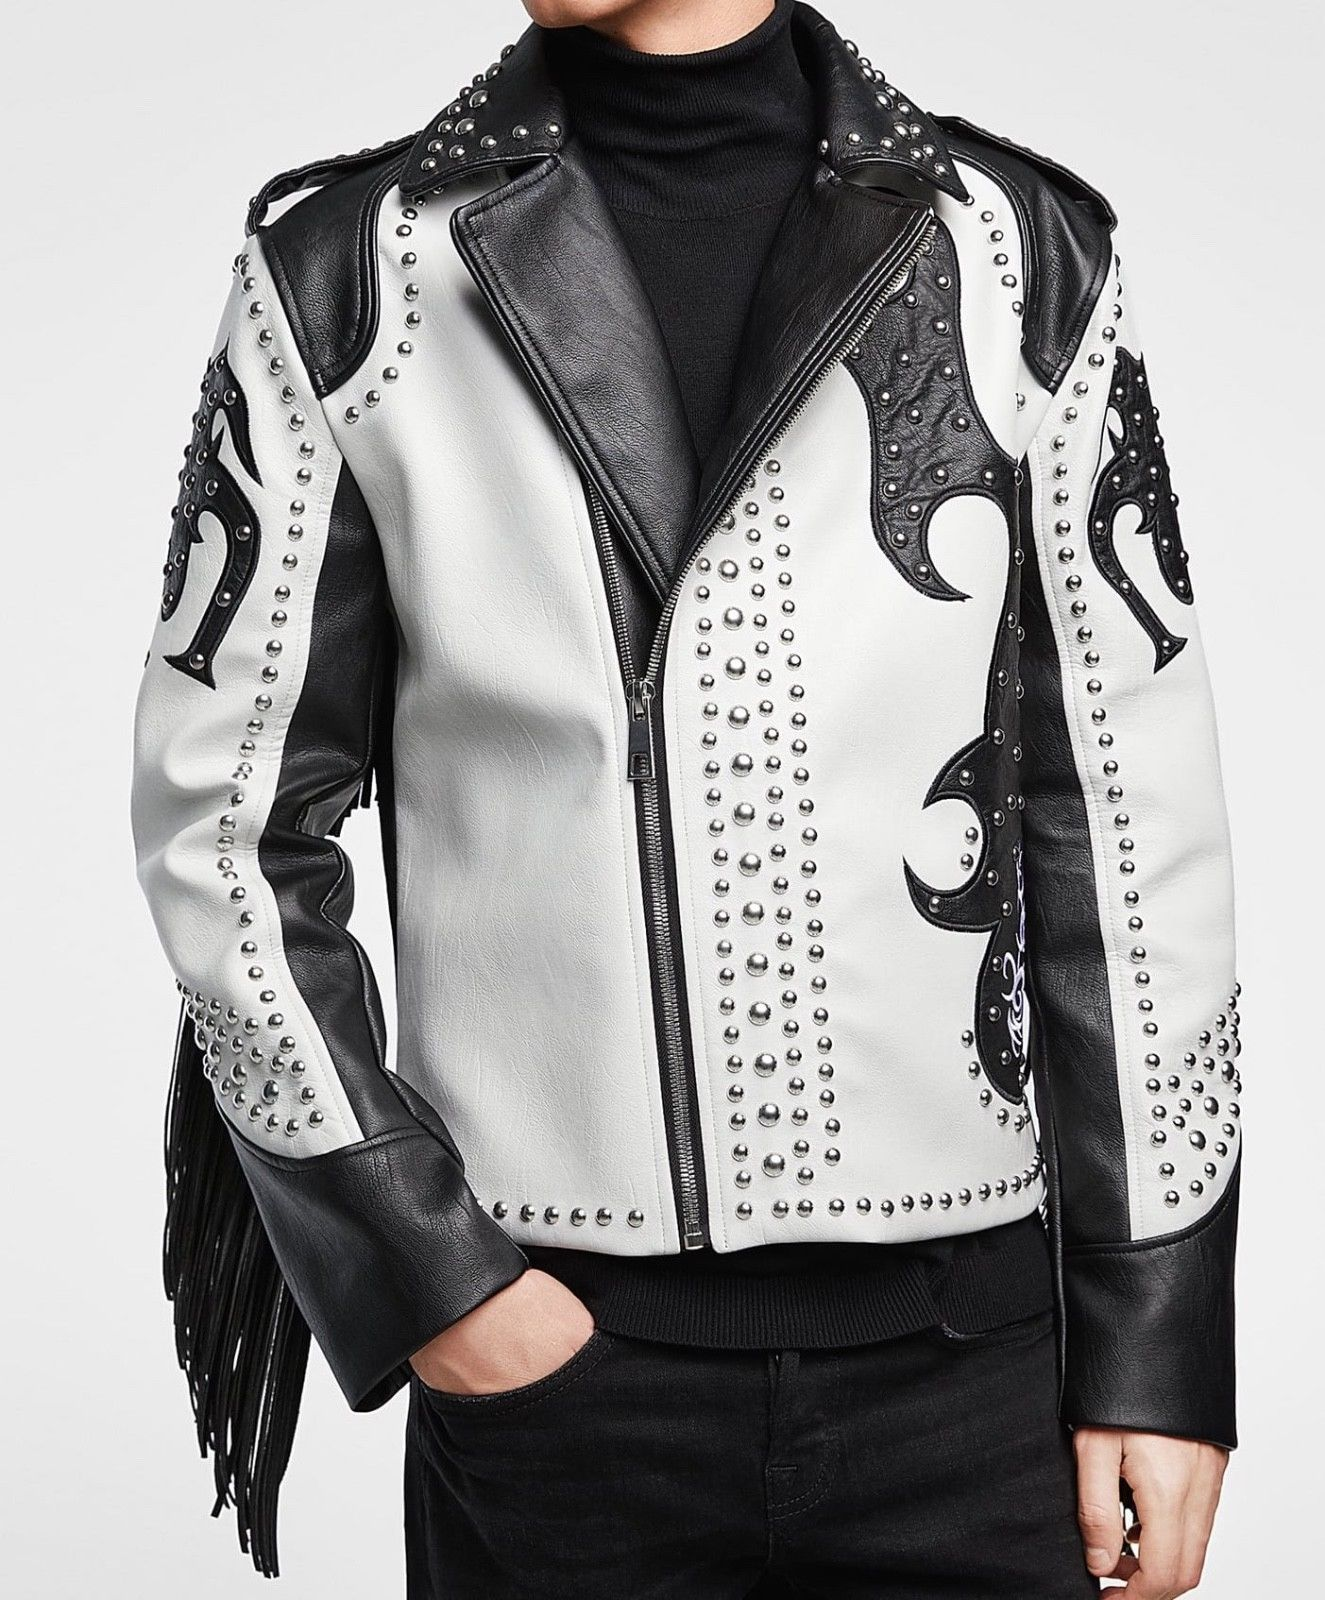 New Men,s Handmade Black and White Leather silver Studded